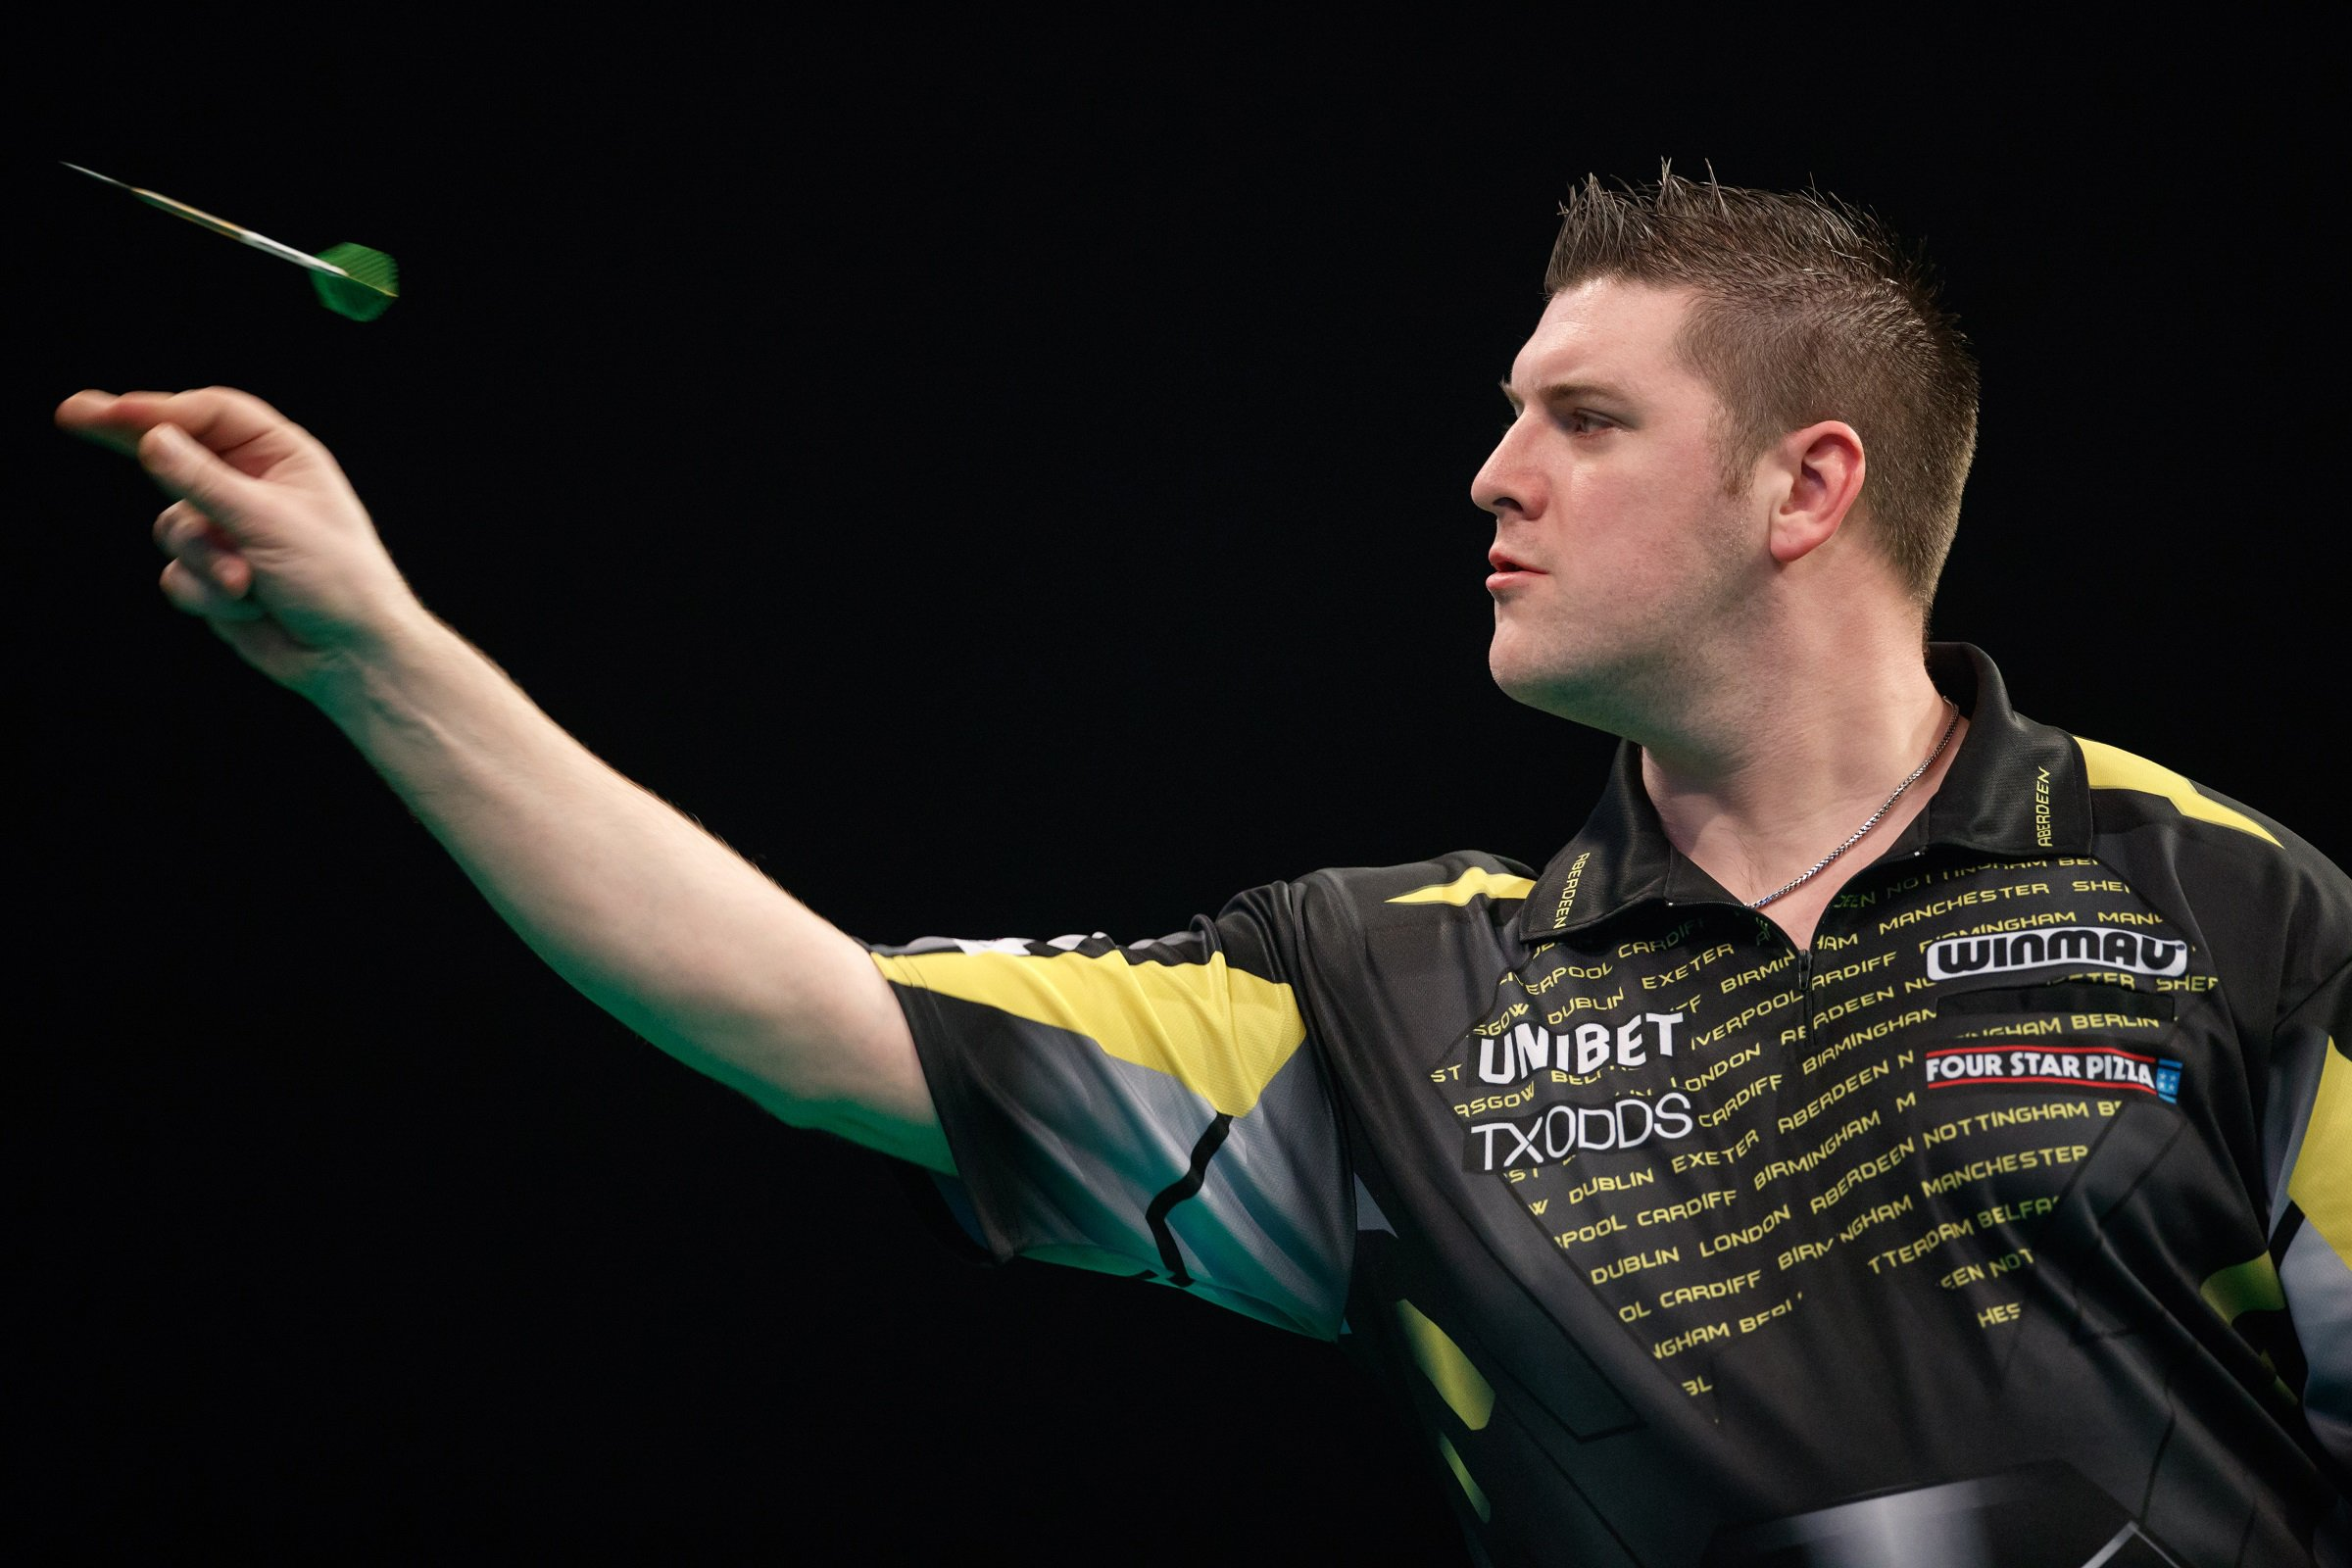 Premier League darts: Daryl Gurney downs Michael van Gerwen in huge Berlin shock